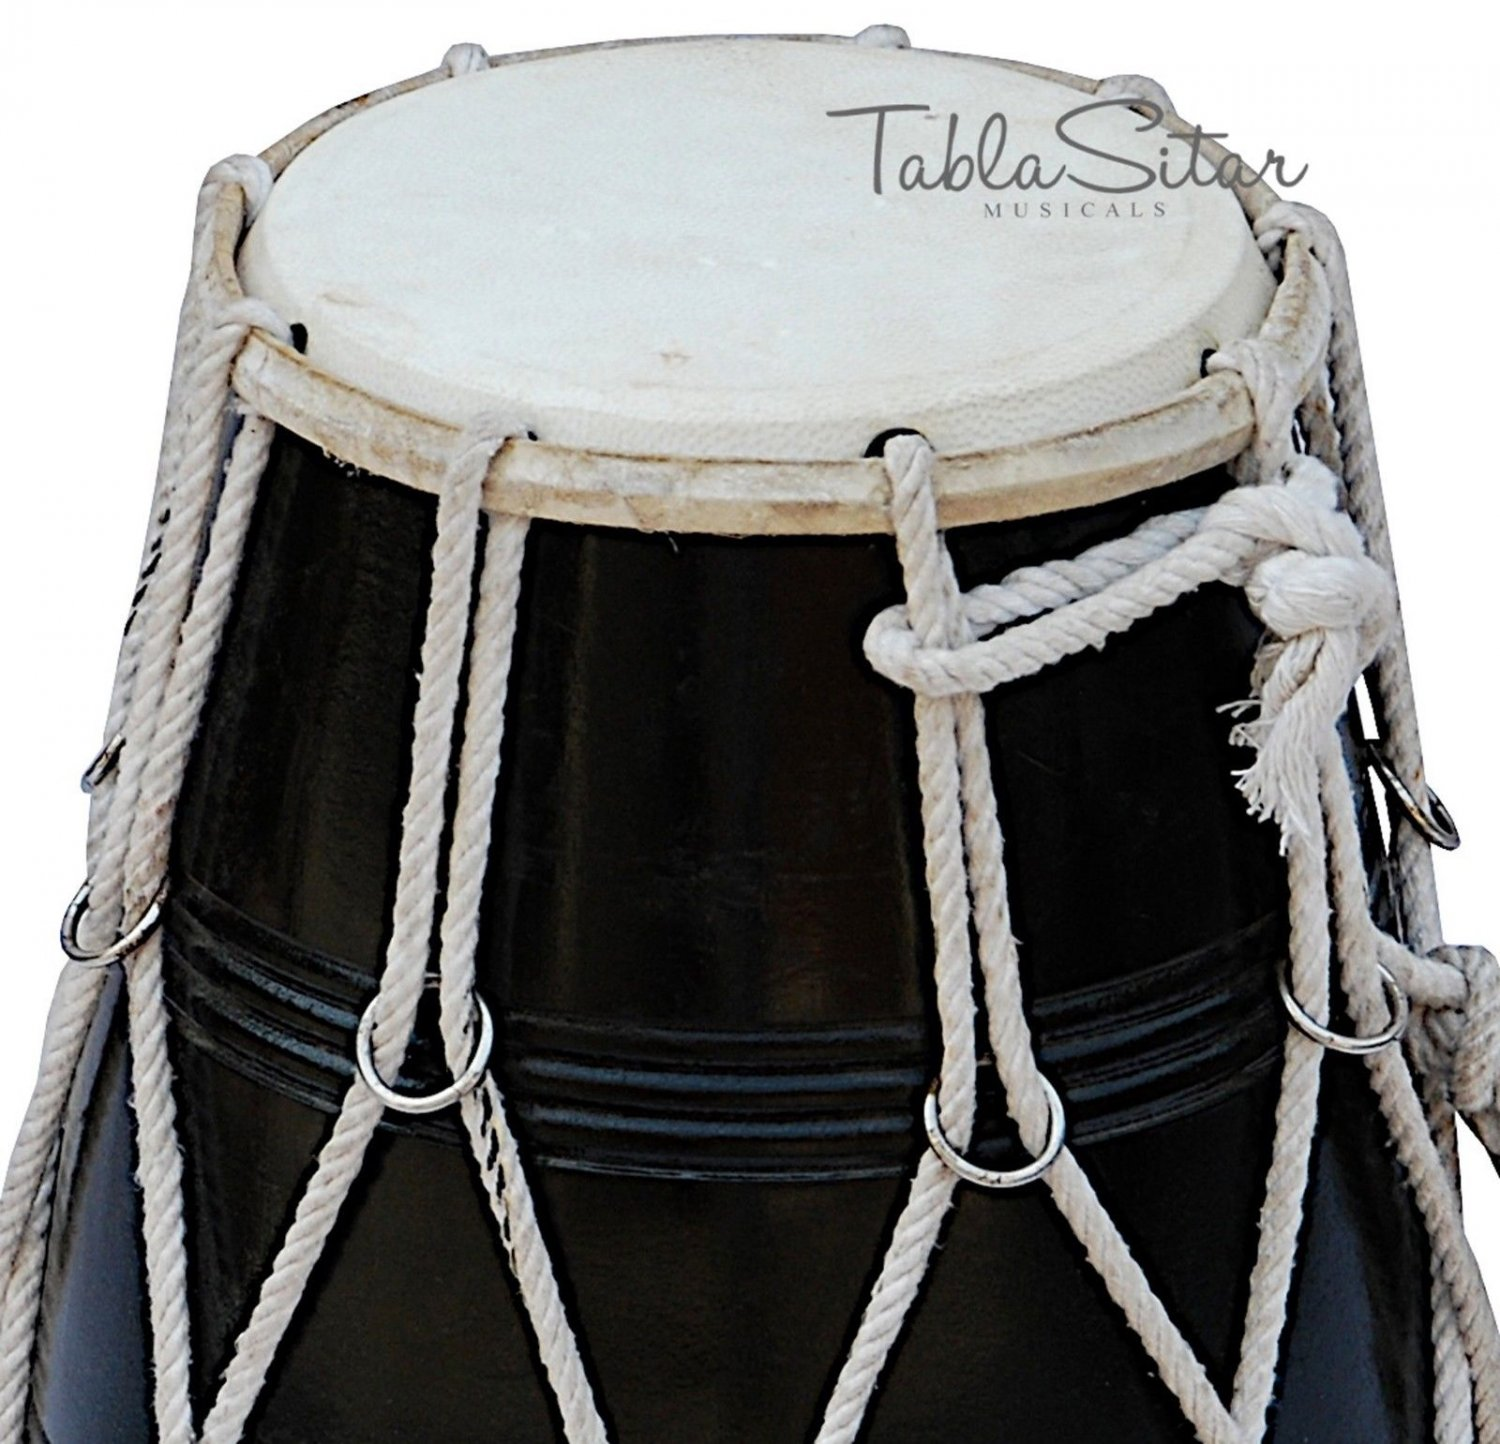 MAHARAJA� MANGO WOOD BLACK DHOLAK/ROPE TUNED/INDIAN DHOLKI/DHOLKI WITH BAG/CJB-2